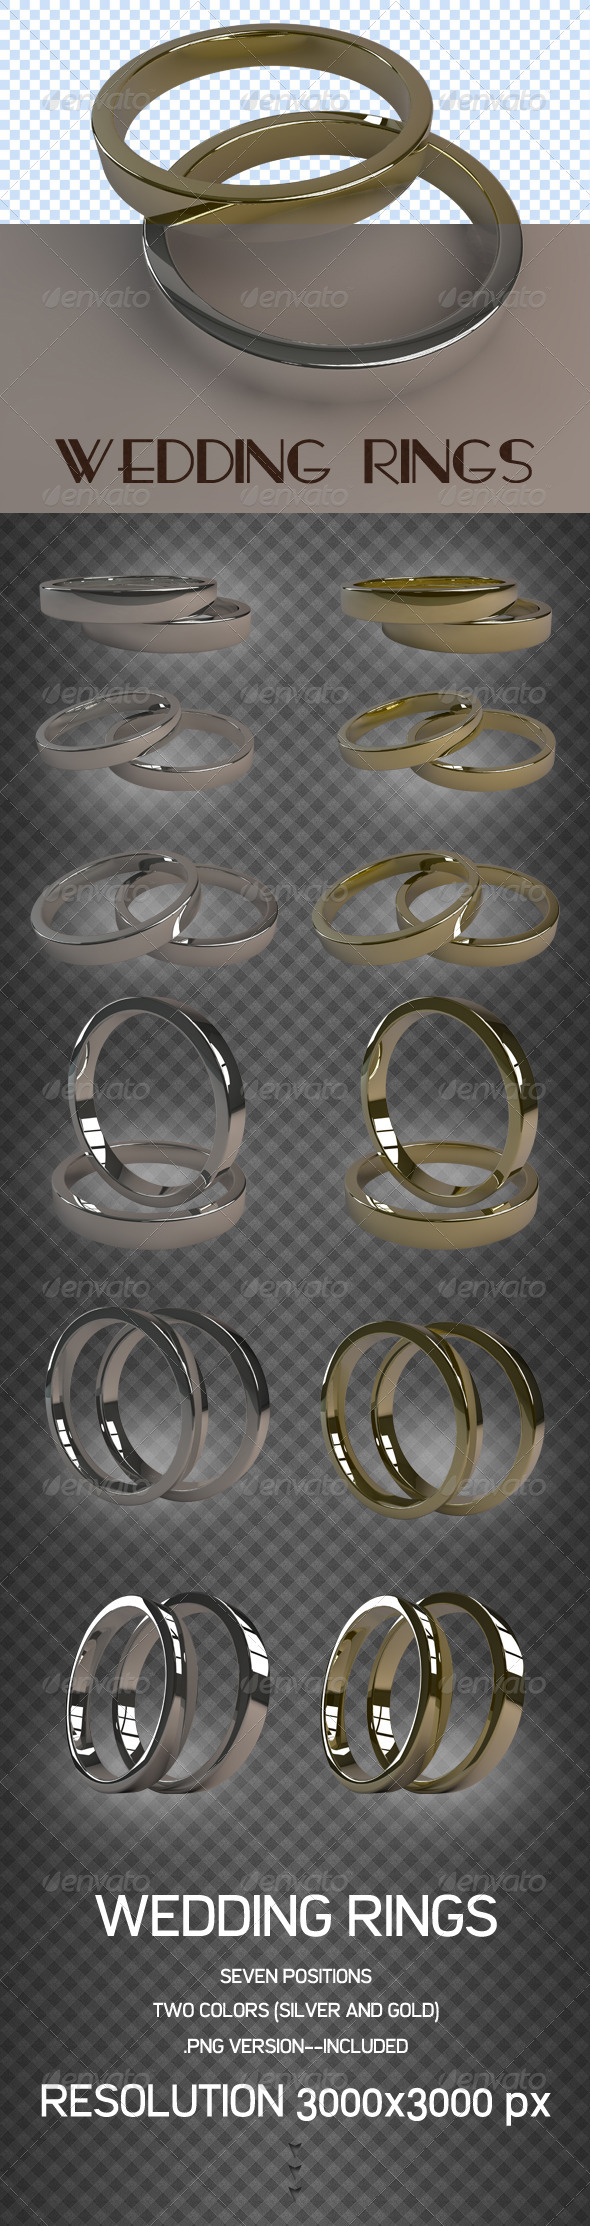 GraphicRiver 3D Wedding Rings 3869483